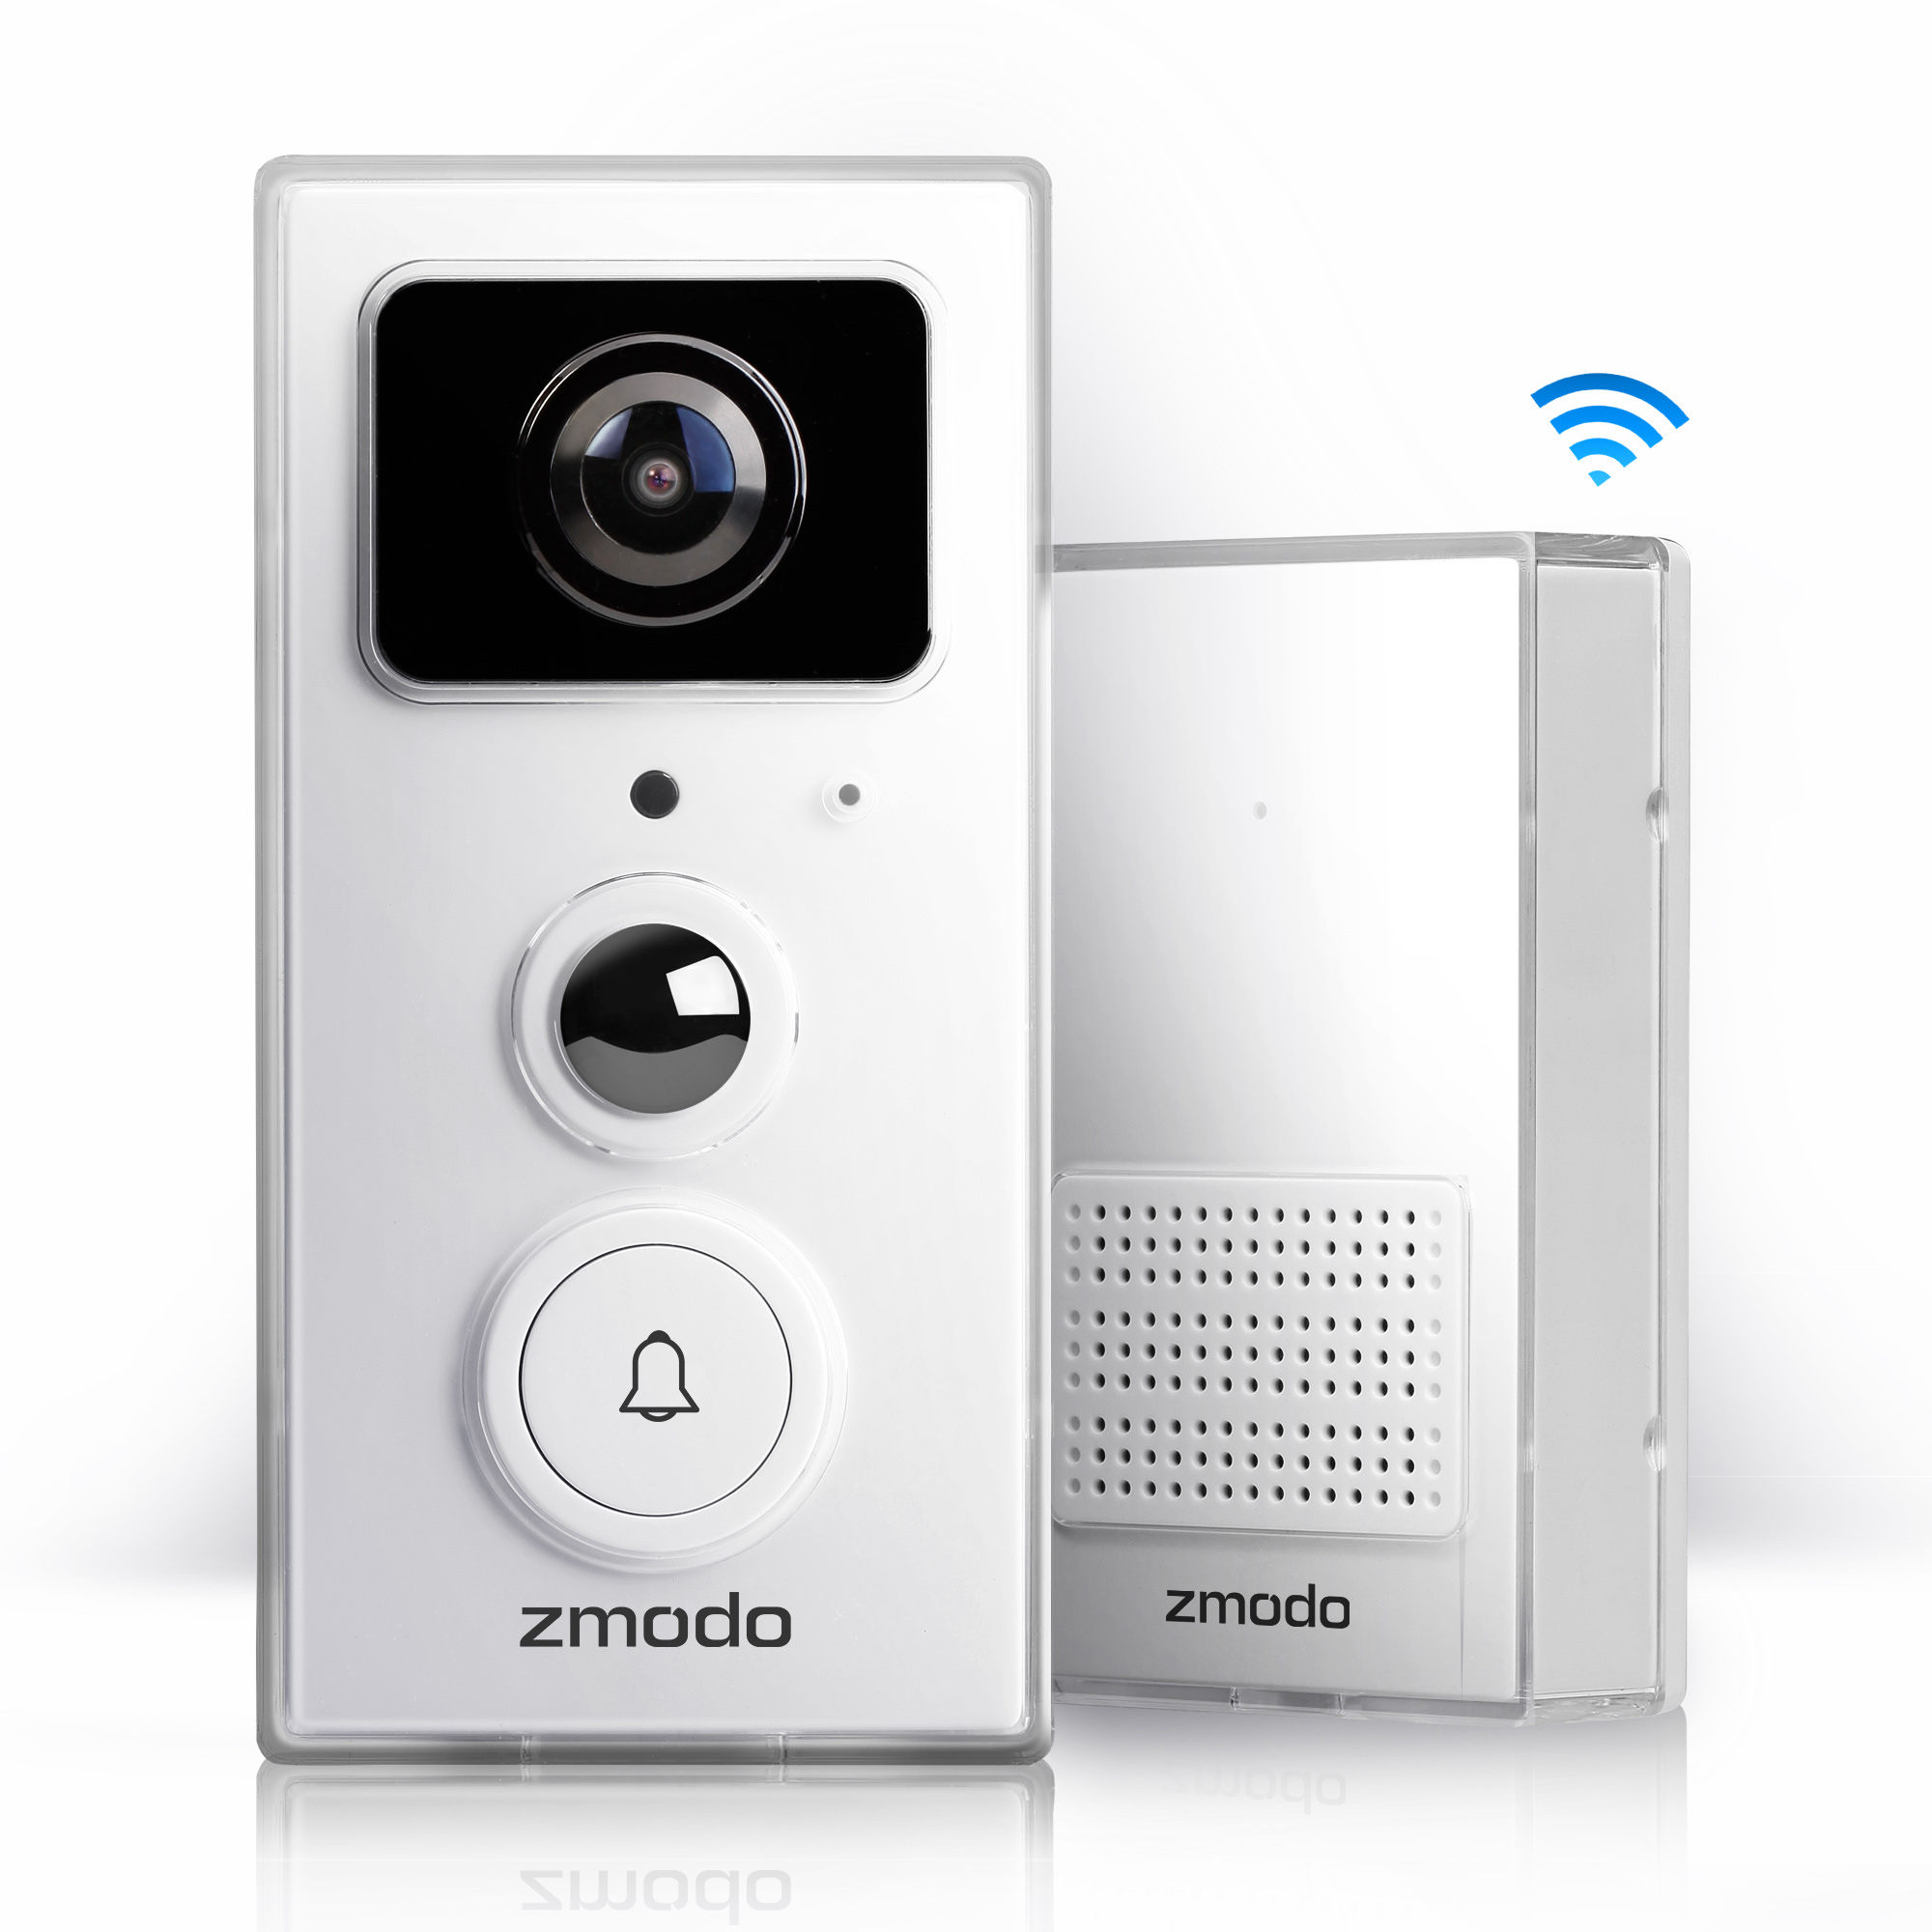 Zmodo Smart Video Doorbell Door Chime with 1080p Full HD WiFi Night Vision Camera by Zmodo